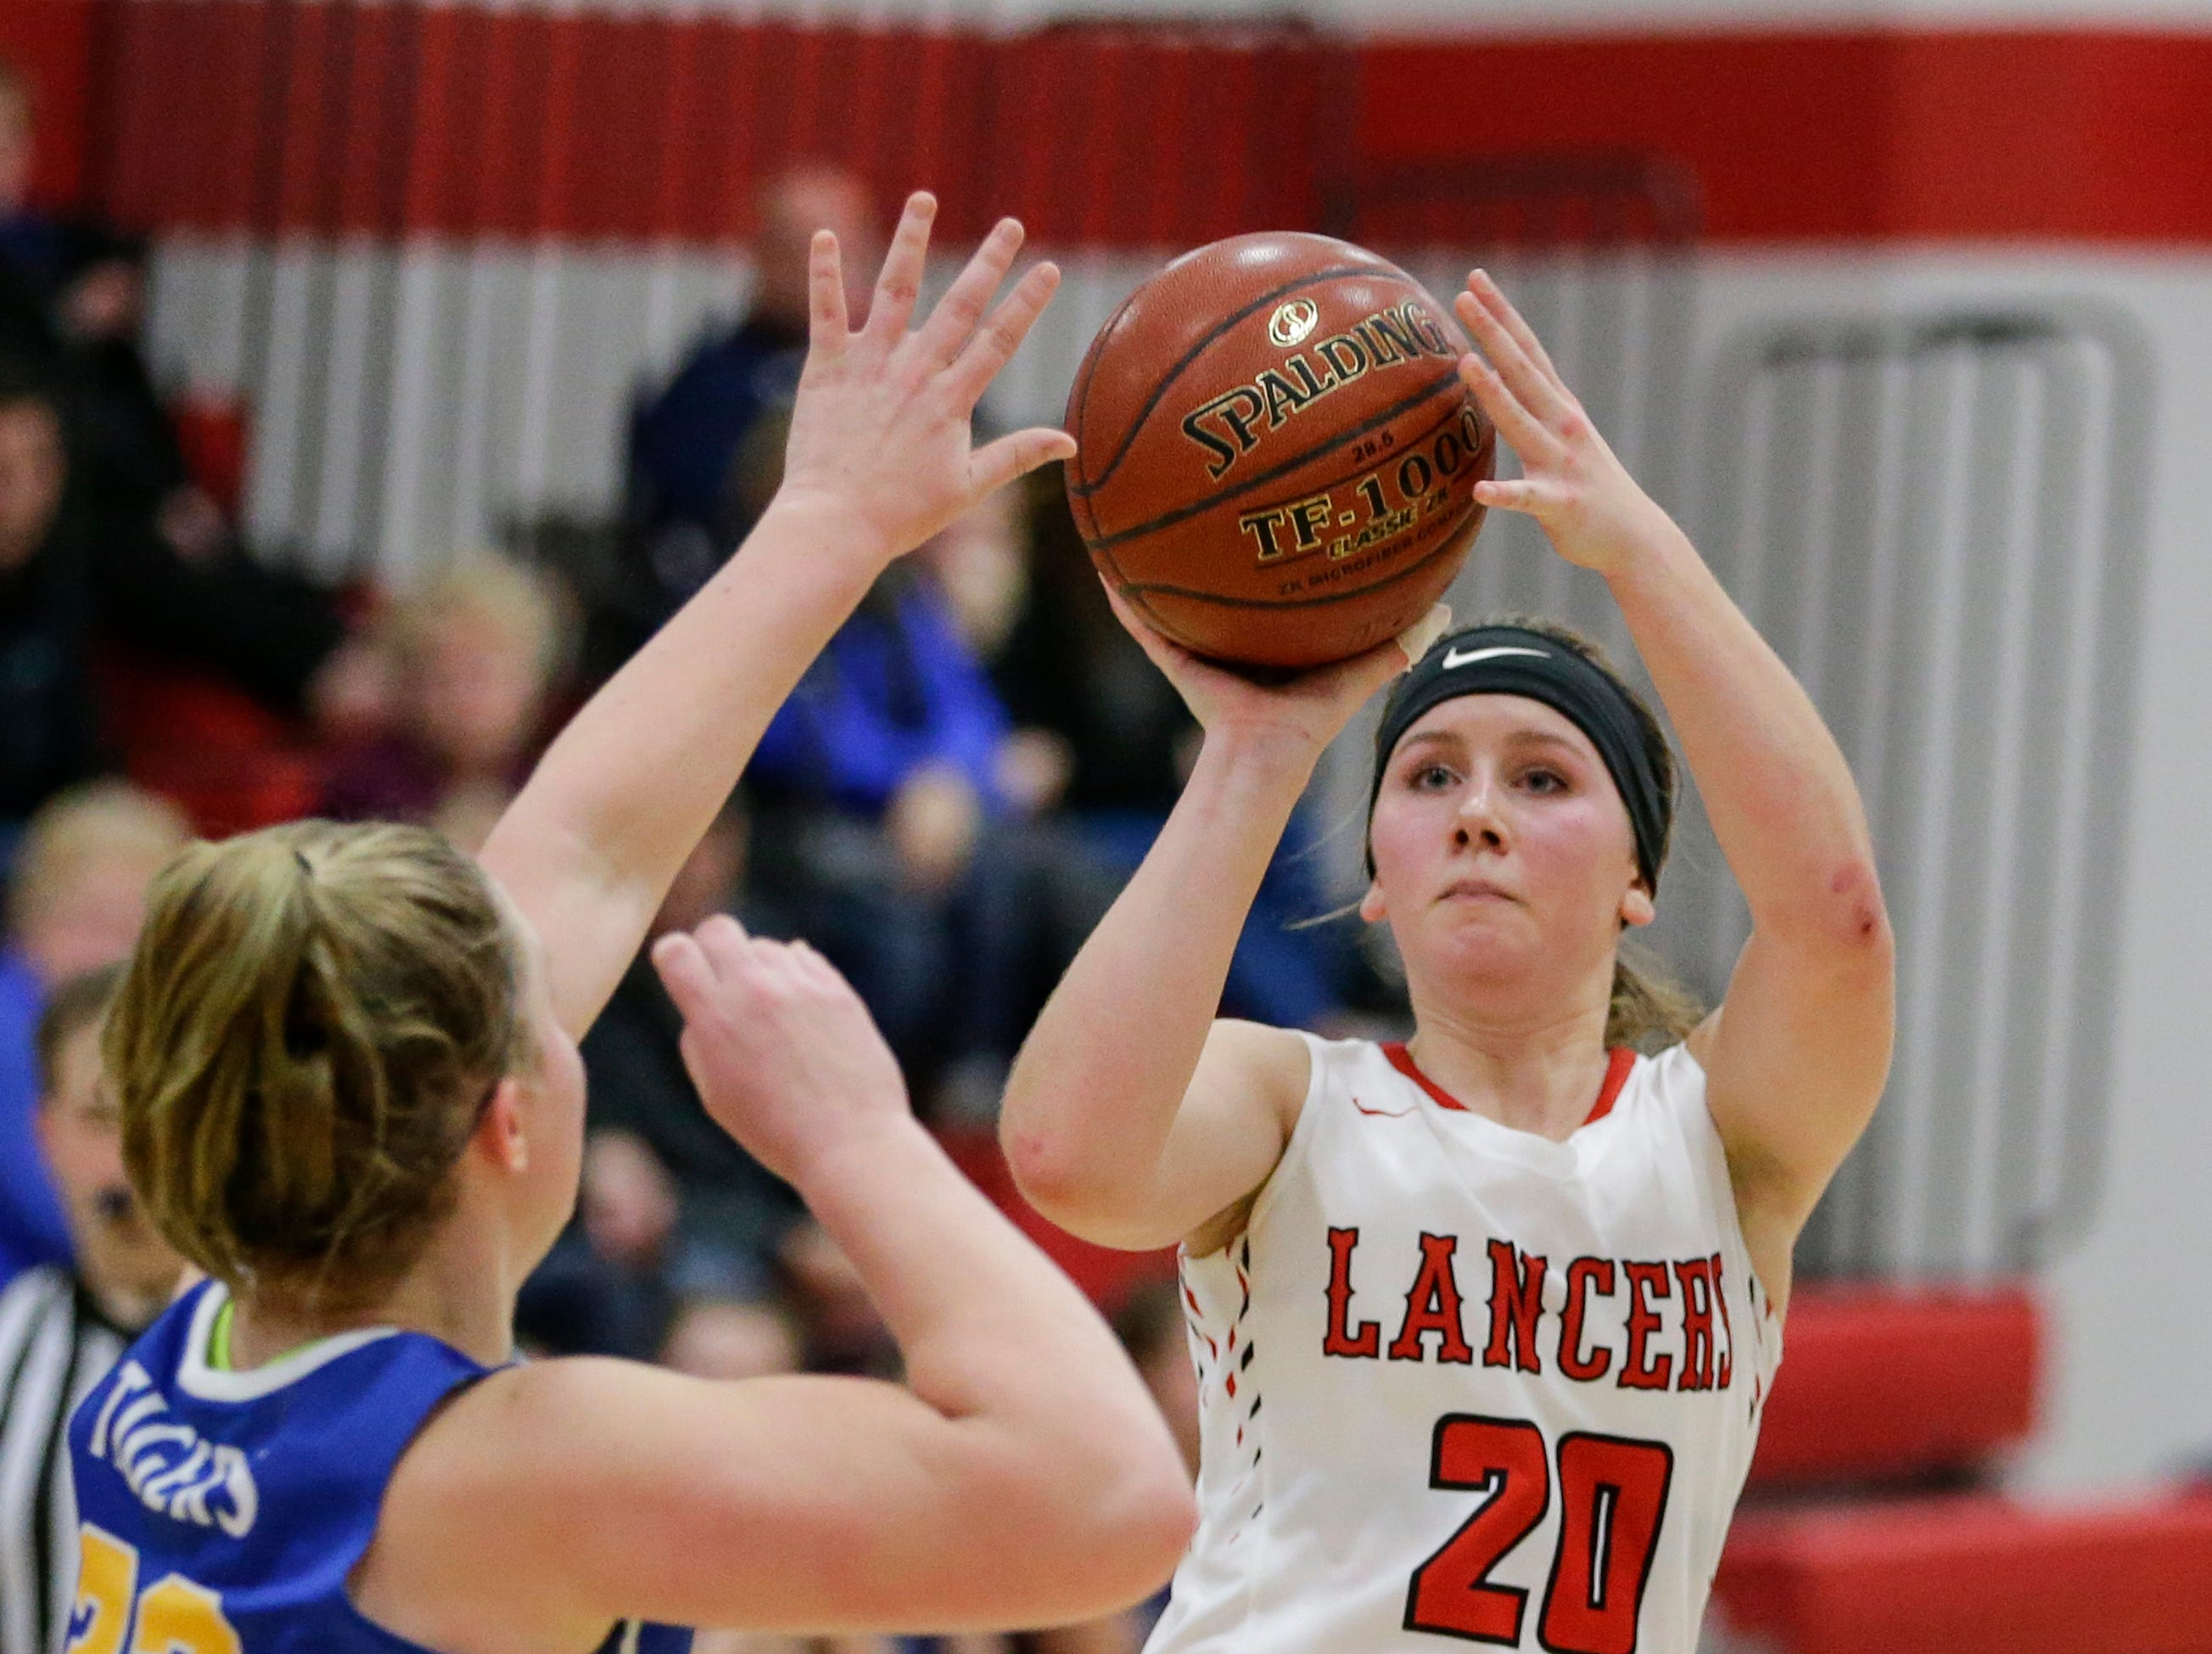 Manitowoc Lutheran's Grace Melso shoots a three against Howards Grove at Manitowoc Lutheran High School Tuesday, December 18, 2018, in Manitowoc, Wis. Joshua Clark/USA TODAY NETWORK-Wisconsin